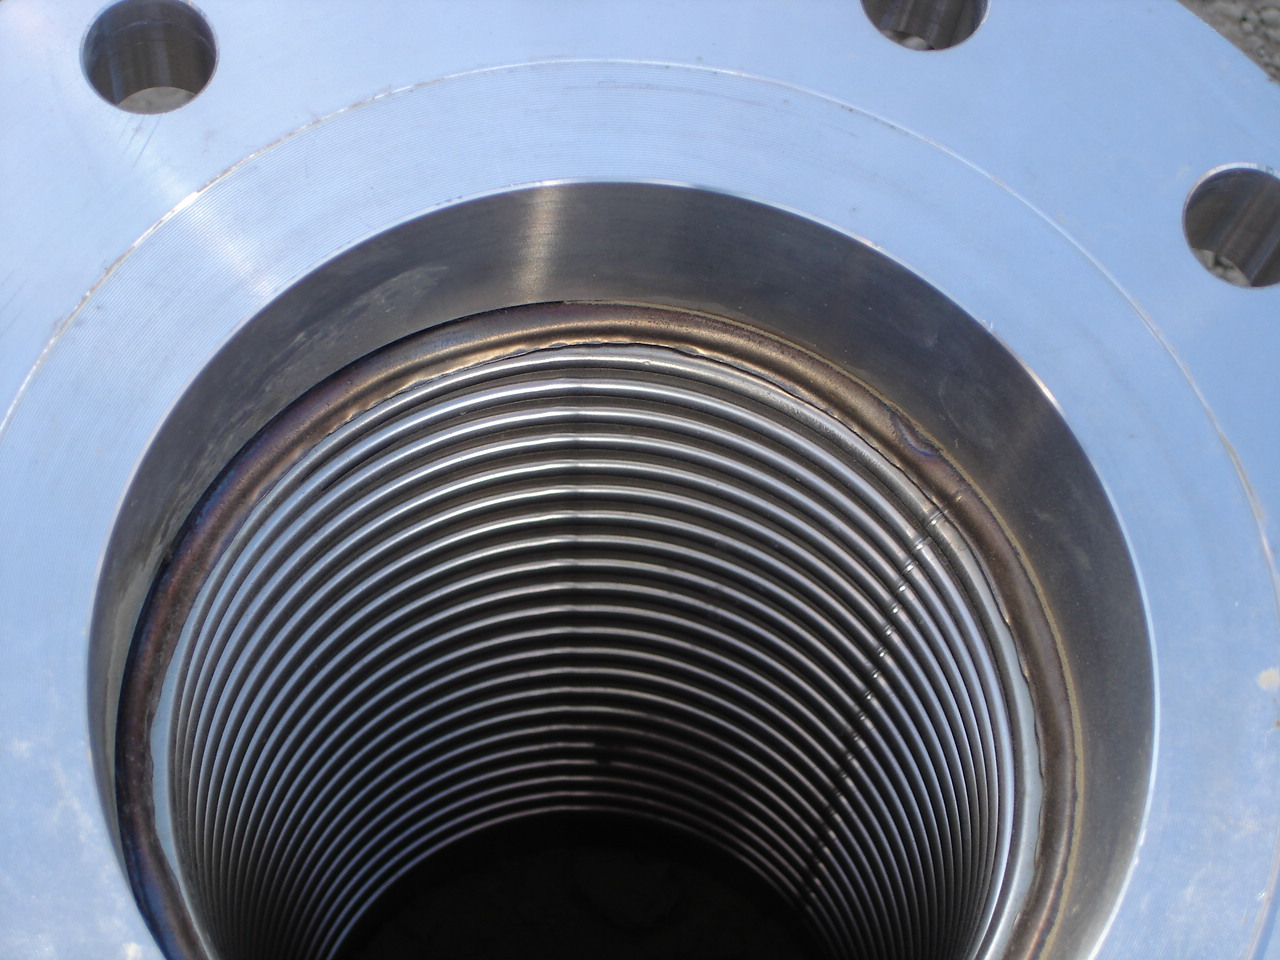 Inside look at stainless steel corrugated hose